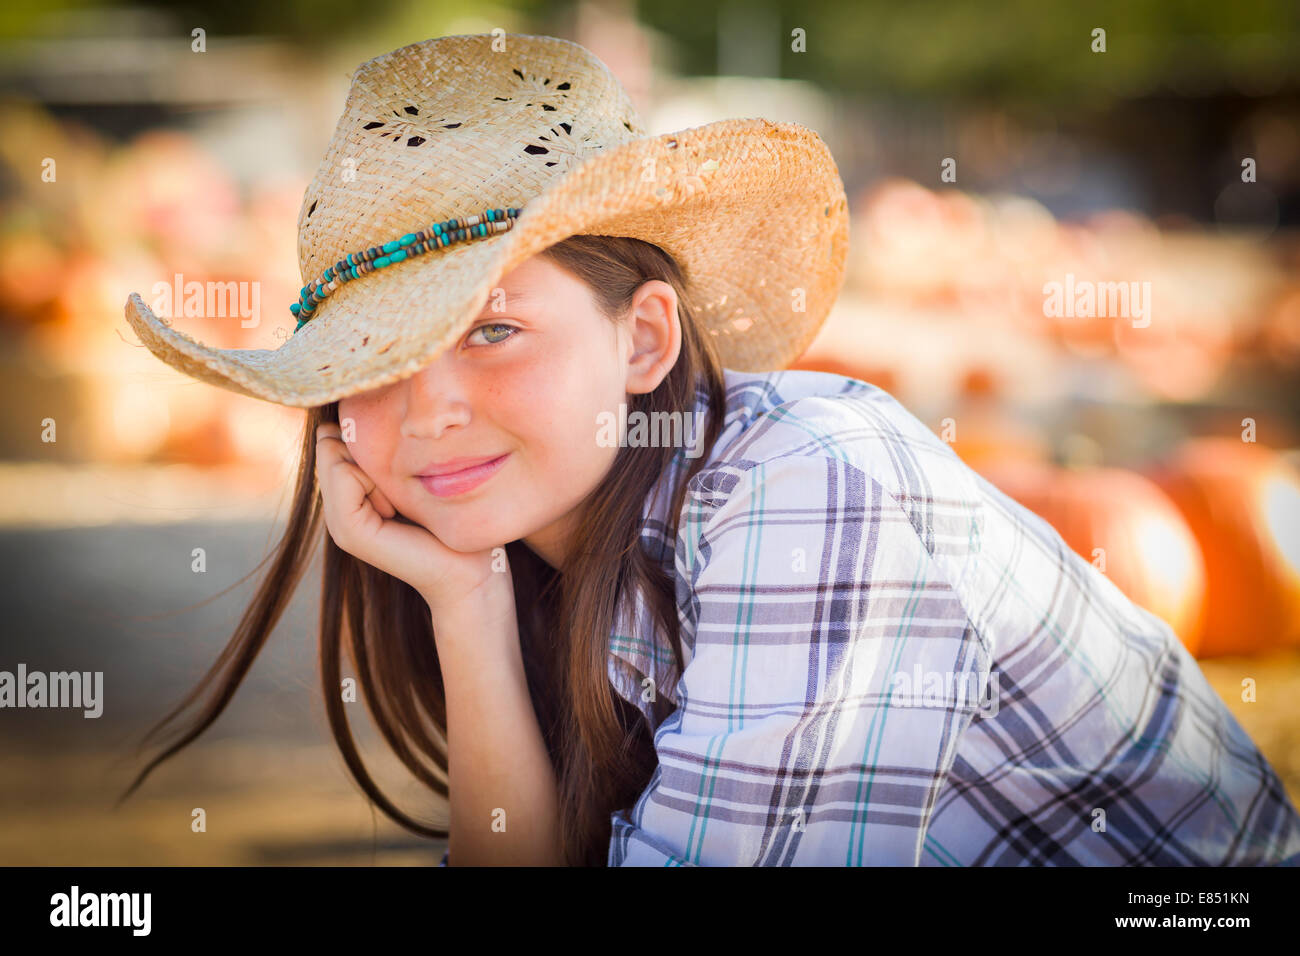 Pretty Preteen Girl Wearing Cowboy Hat Portrait at the Pumpkin Patch in a Rustic Setting. - Stock Image